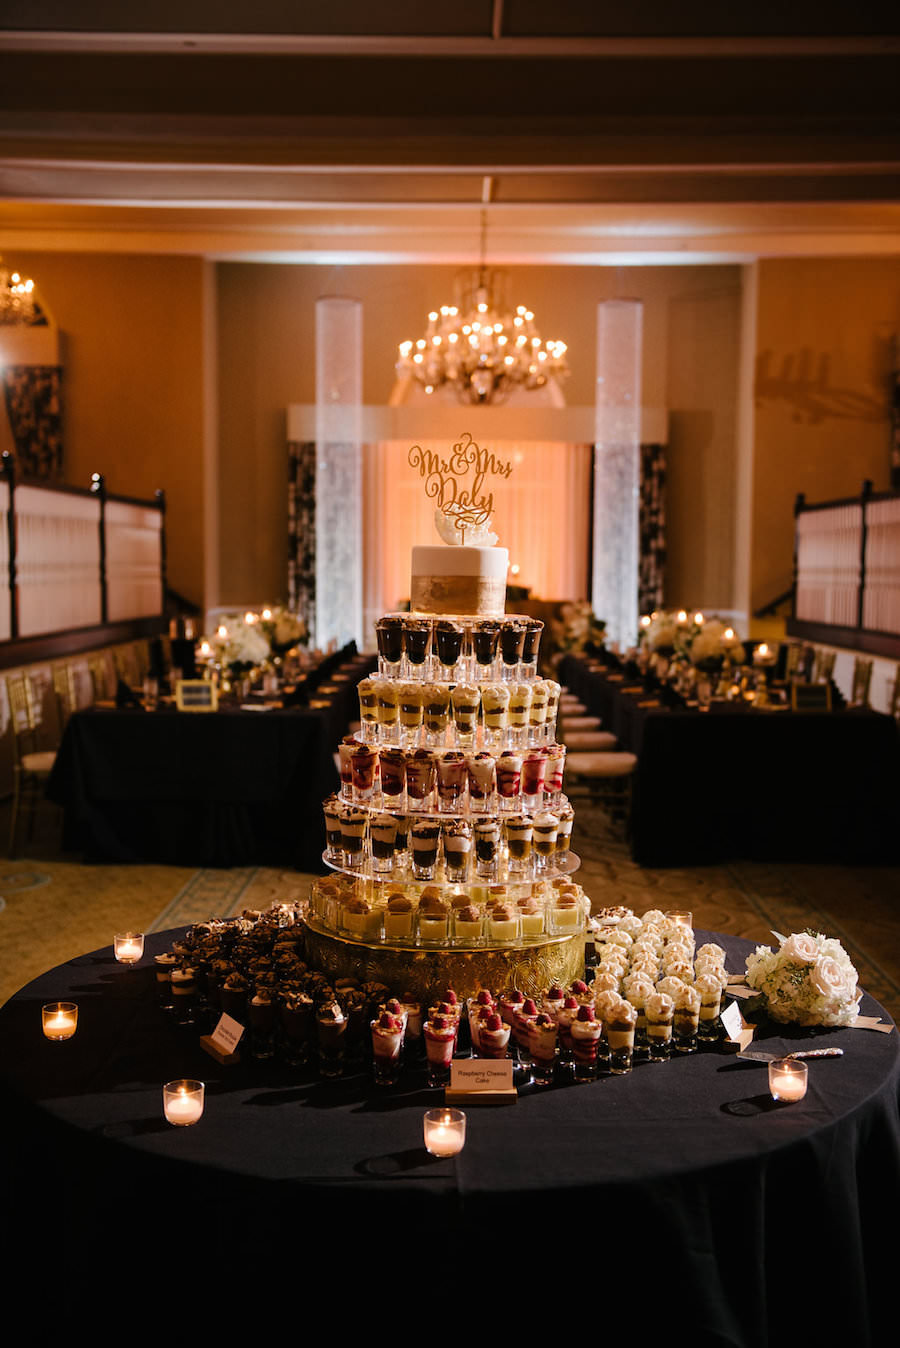 Seven Tiered Dessert Shooter Wedding Cake With Gold And